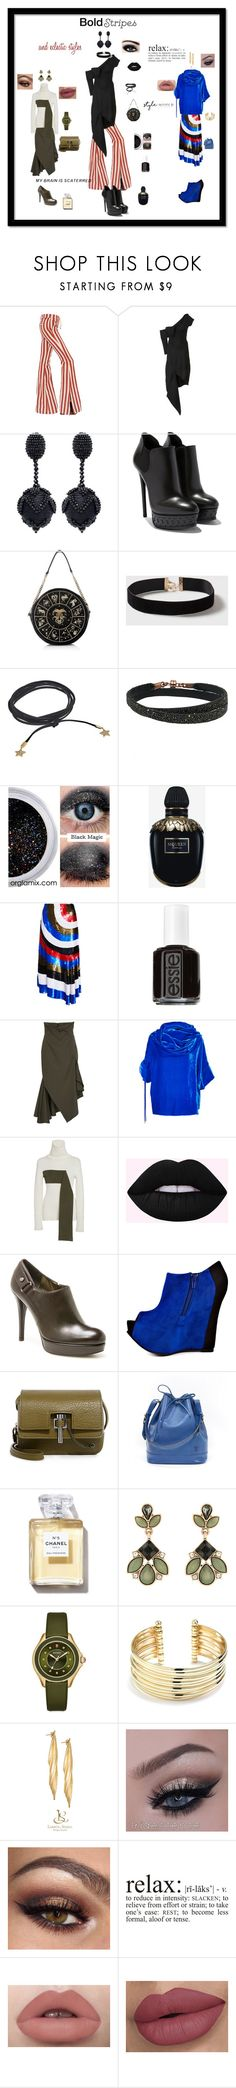 """bold stripes and eclectic styles"" by giagiagia ❤ liked on Polyvore featuring Roberto Cavalli, Monse, Oscar de la Renta, Dorothy Perkins, Rebecca Minkoff, Alexander McQueen, Max Factor, Essie, Stuart Weitzman and Luichiny"